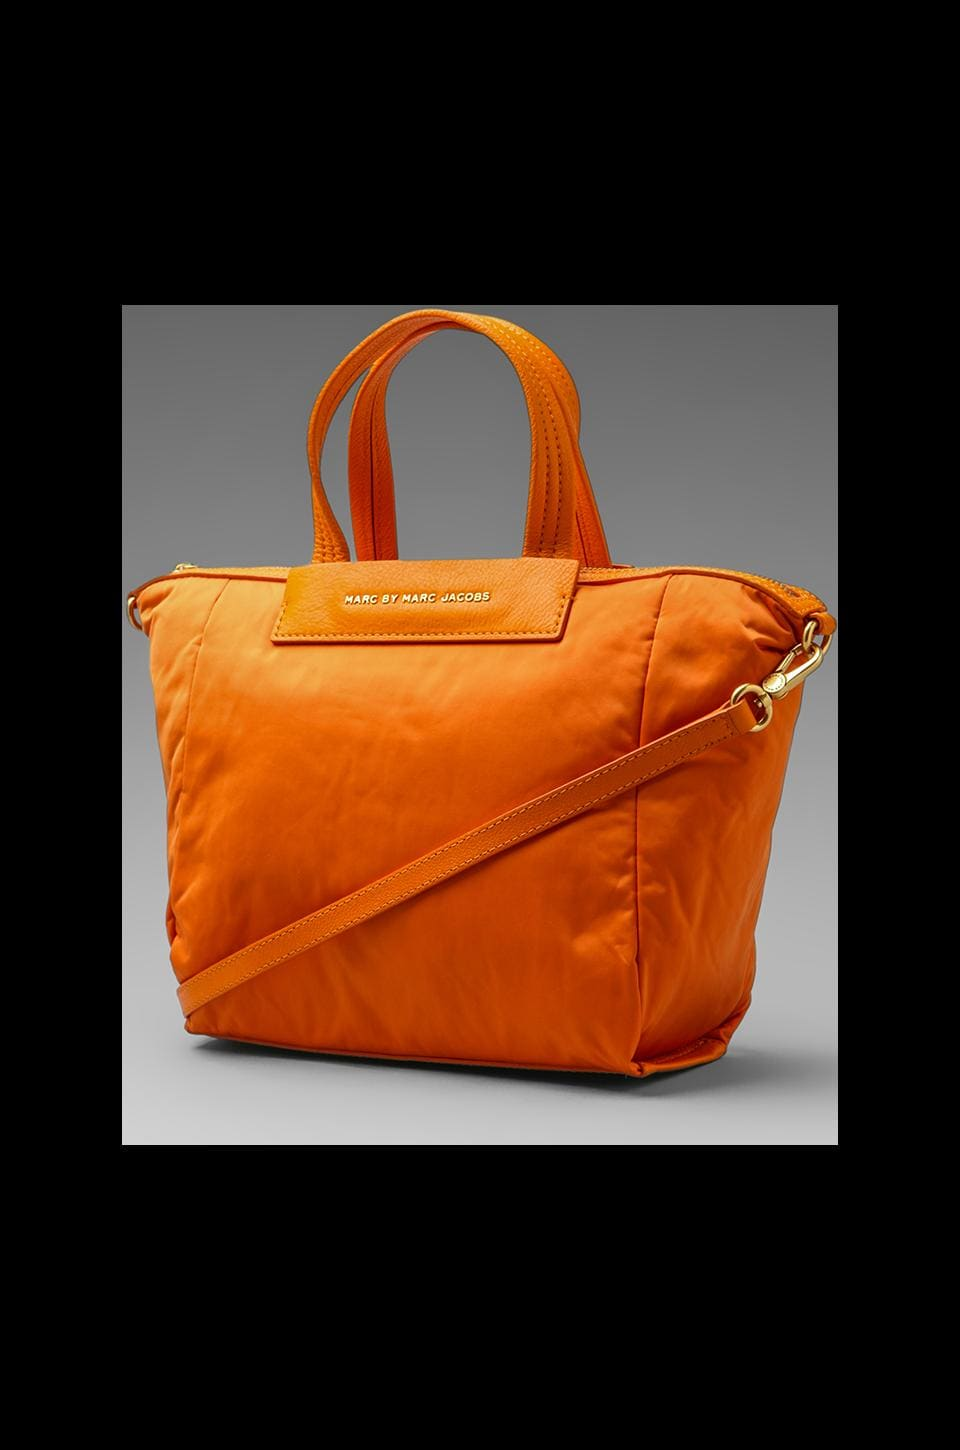 Marc by Marc Jacobs Jewel on the Nylon Petite Puff in Saffron